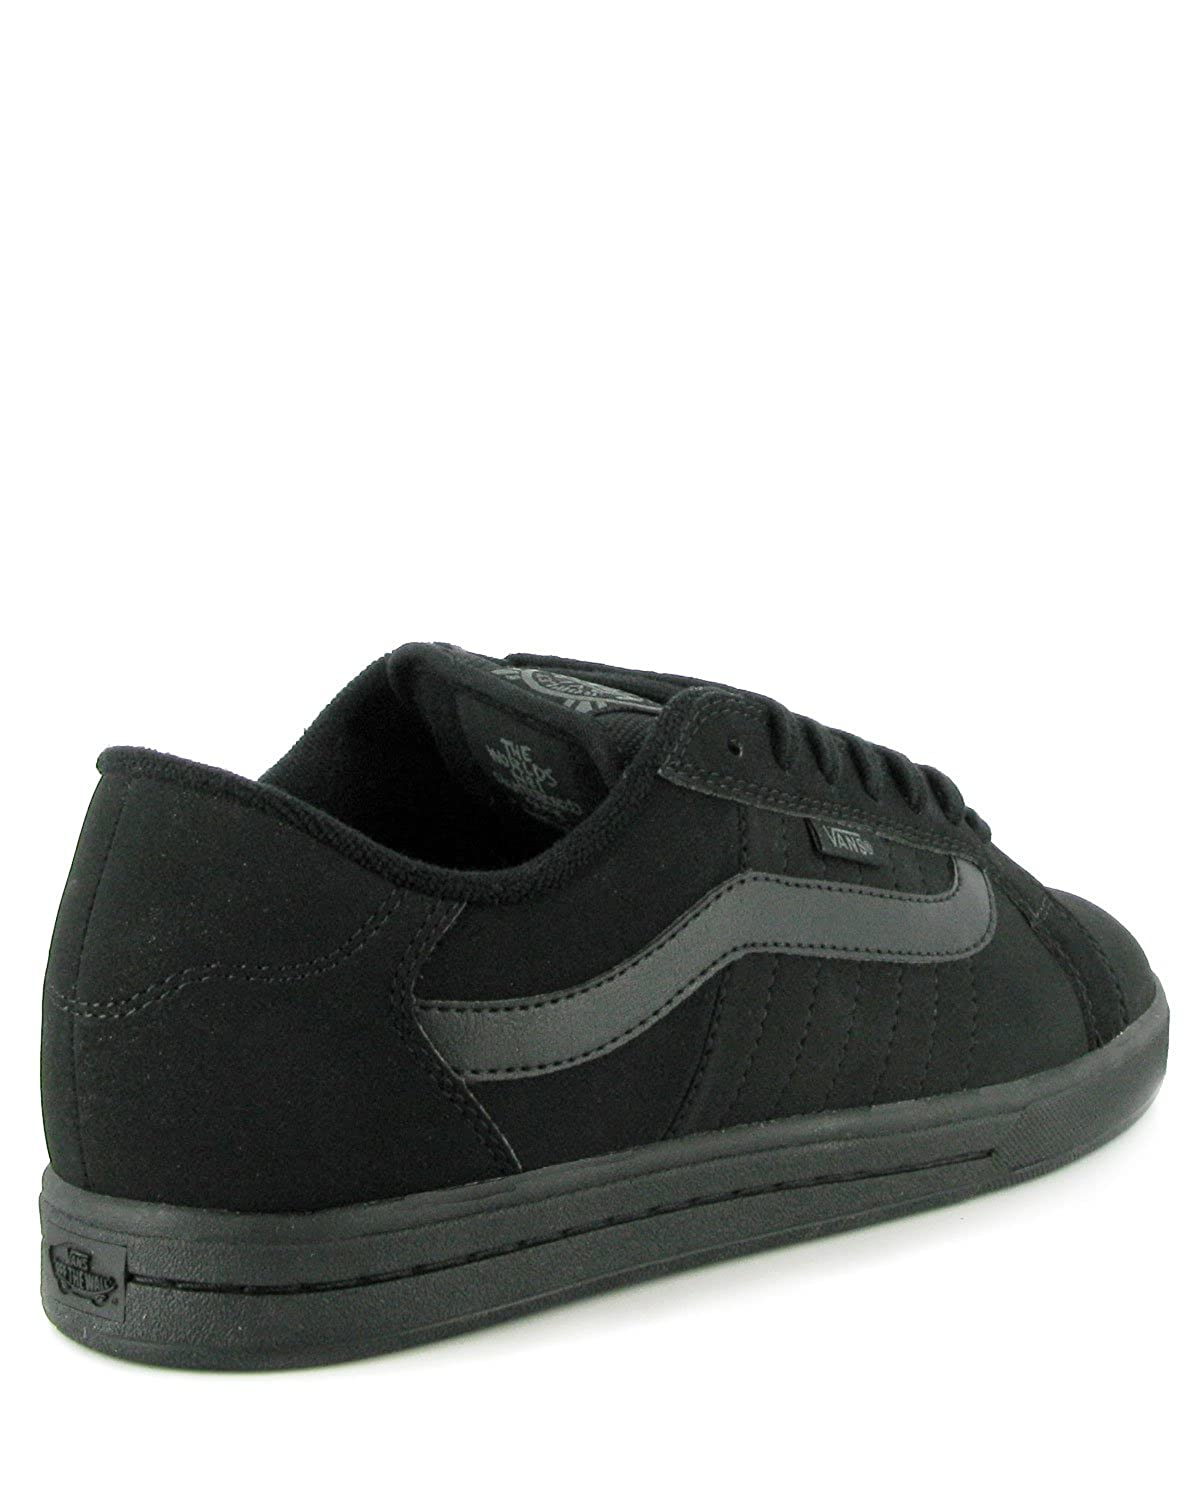 76cfc273188 Vans Rowley Stripes Synthetic Black Black JLA0P7 (UK12)  Amazon.co.uk  Shoes    Bags